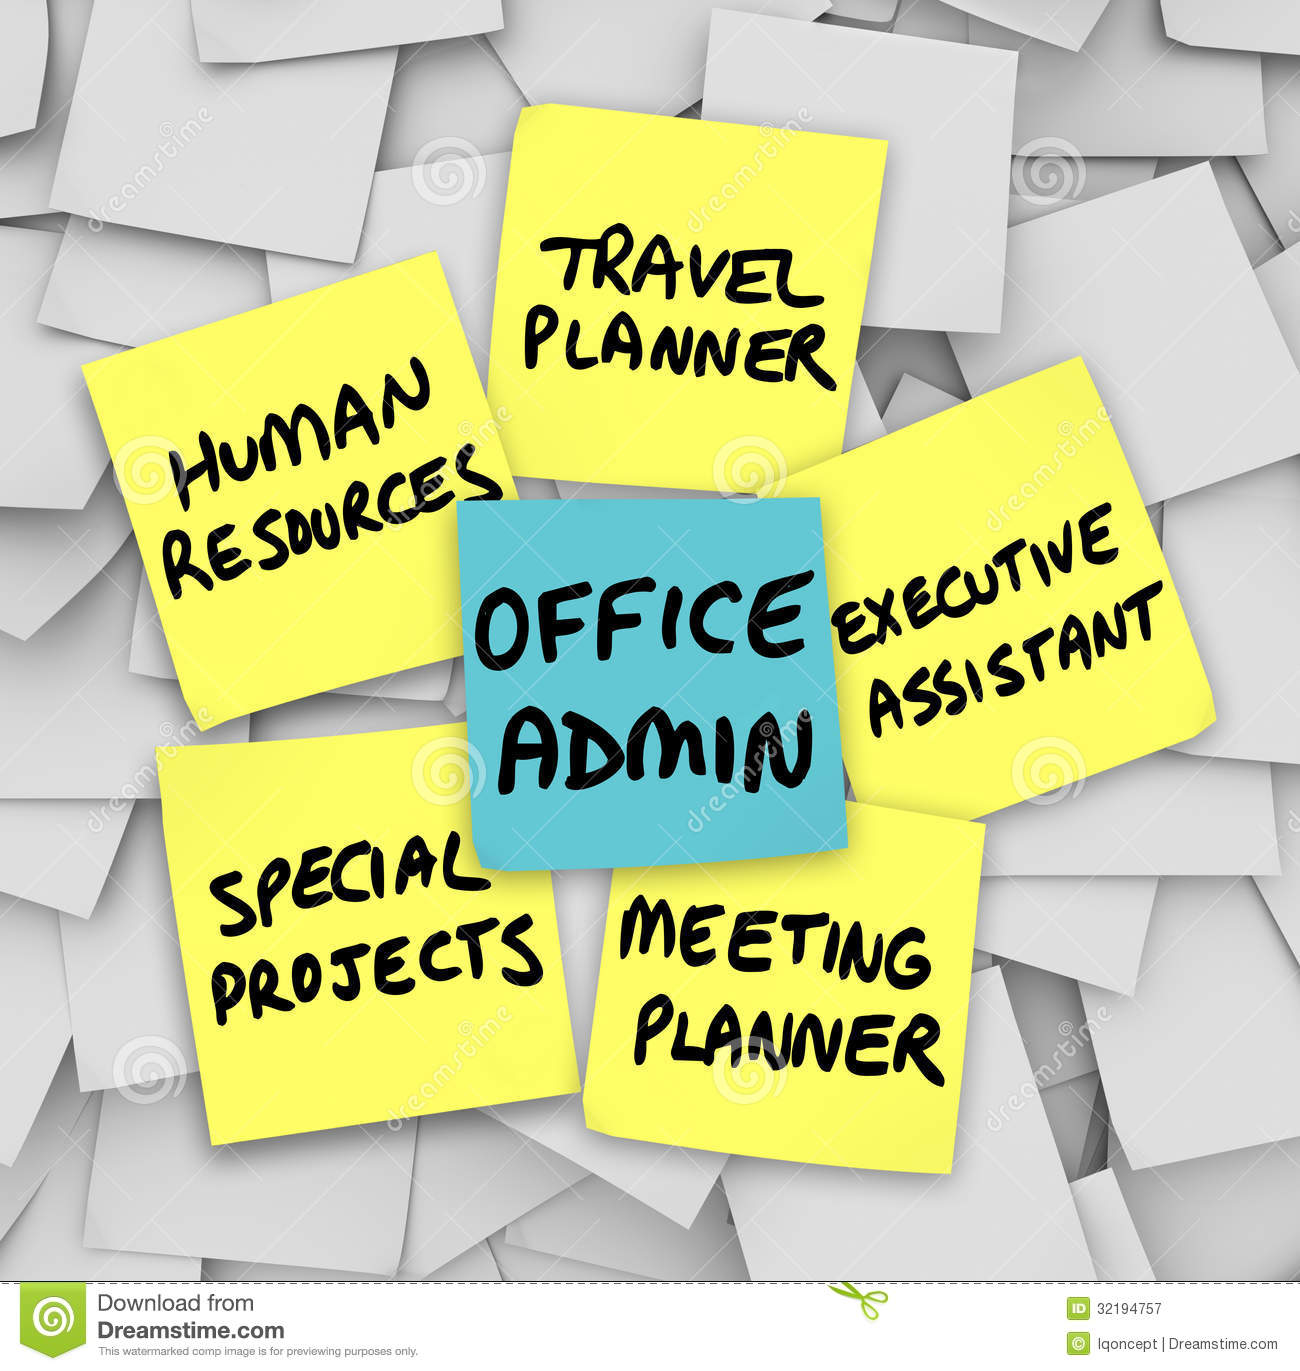 office administrator job duties meeting travel planner manger clipart manager clipart free